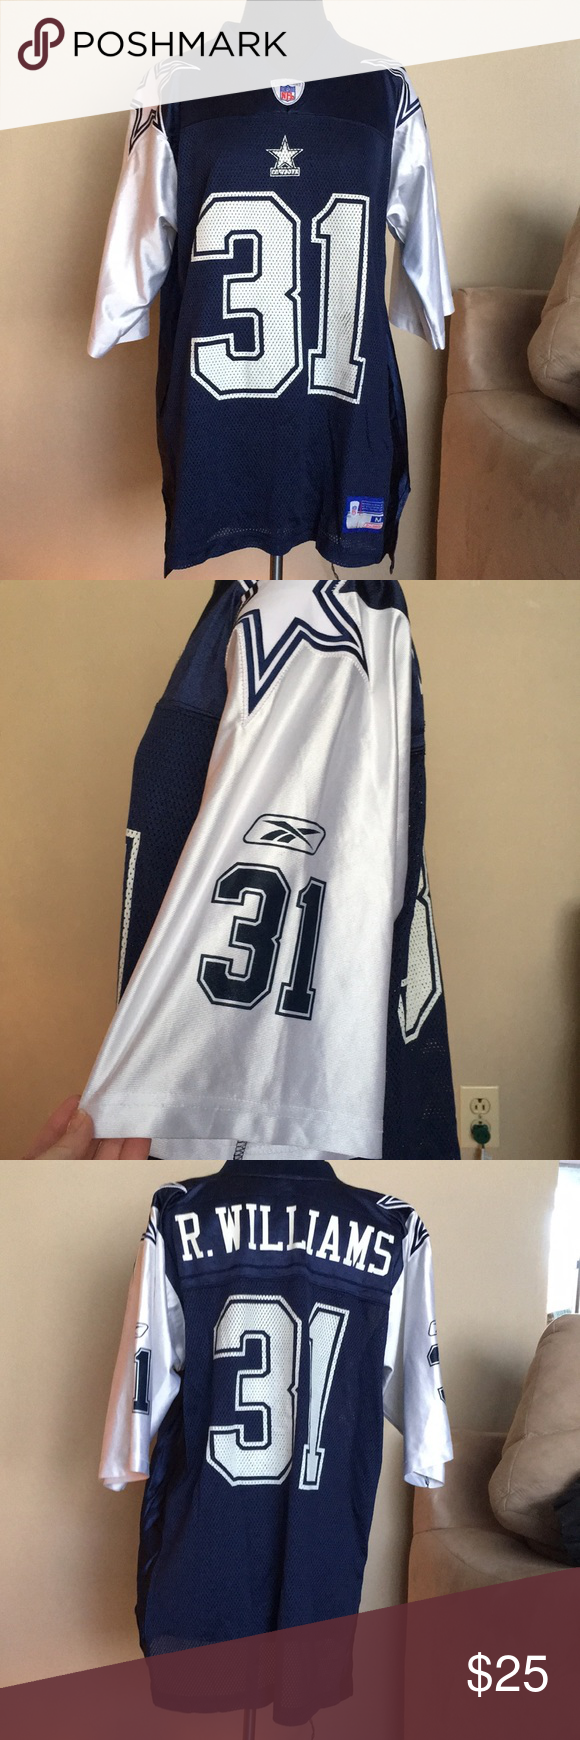 f477dccd4 Roy Williams Dallas Cowboys NFL Jersey Dallas Cowboys Reebok Roy Williams  Jersey #31 R. Williams Reebok Other